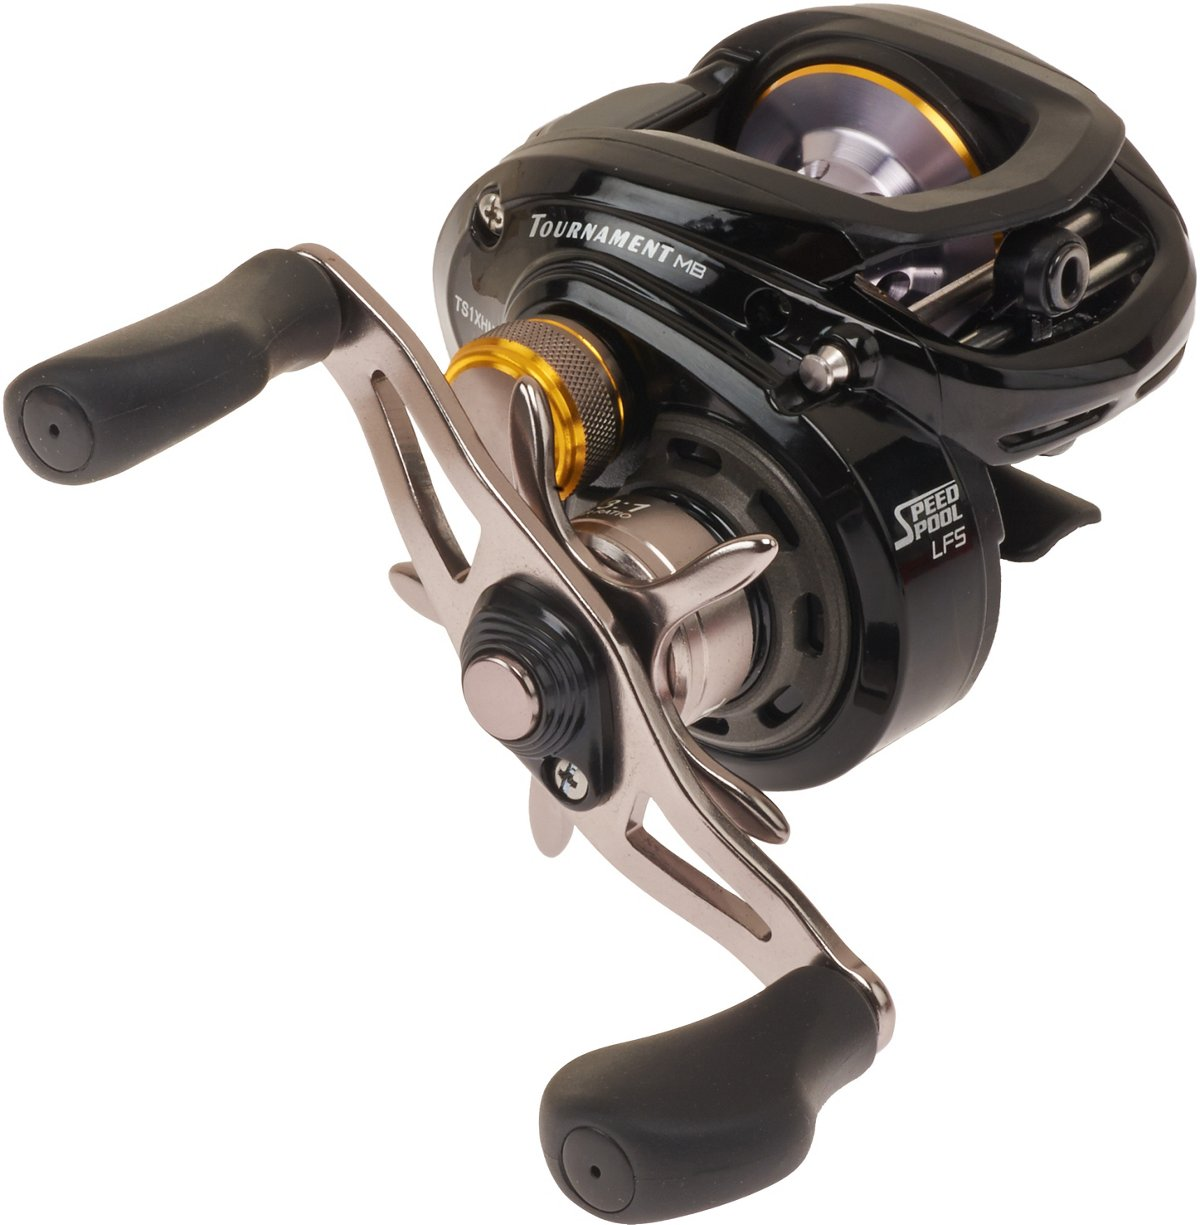 Lew's Tournament MB Speed Spool LFS Series Baitcast Reel Right-handed